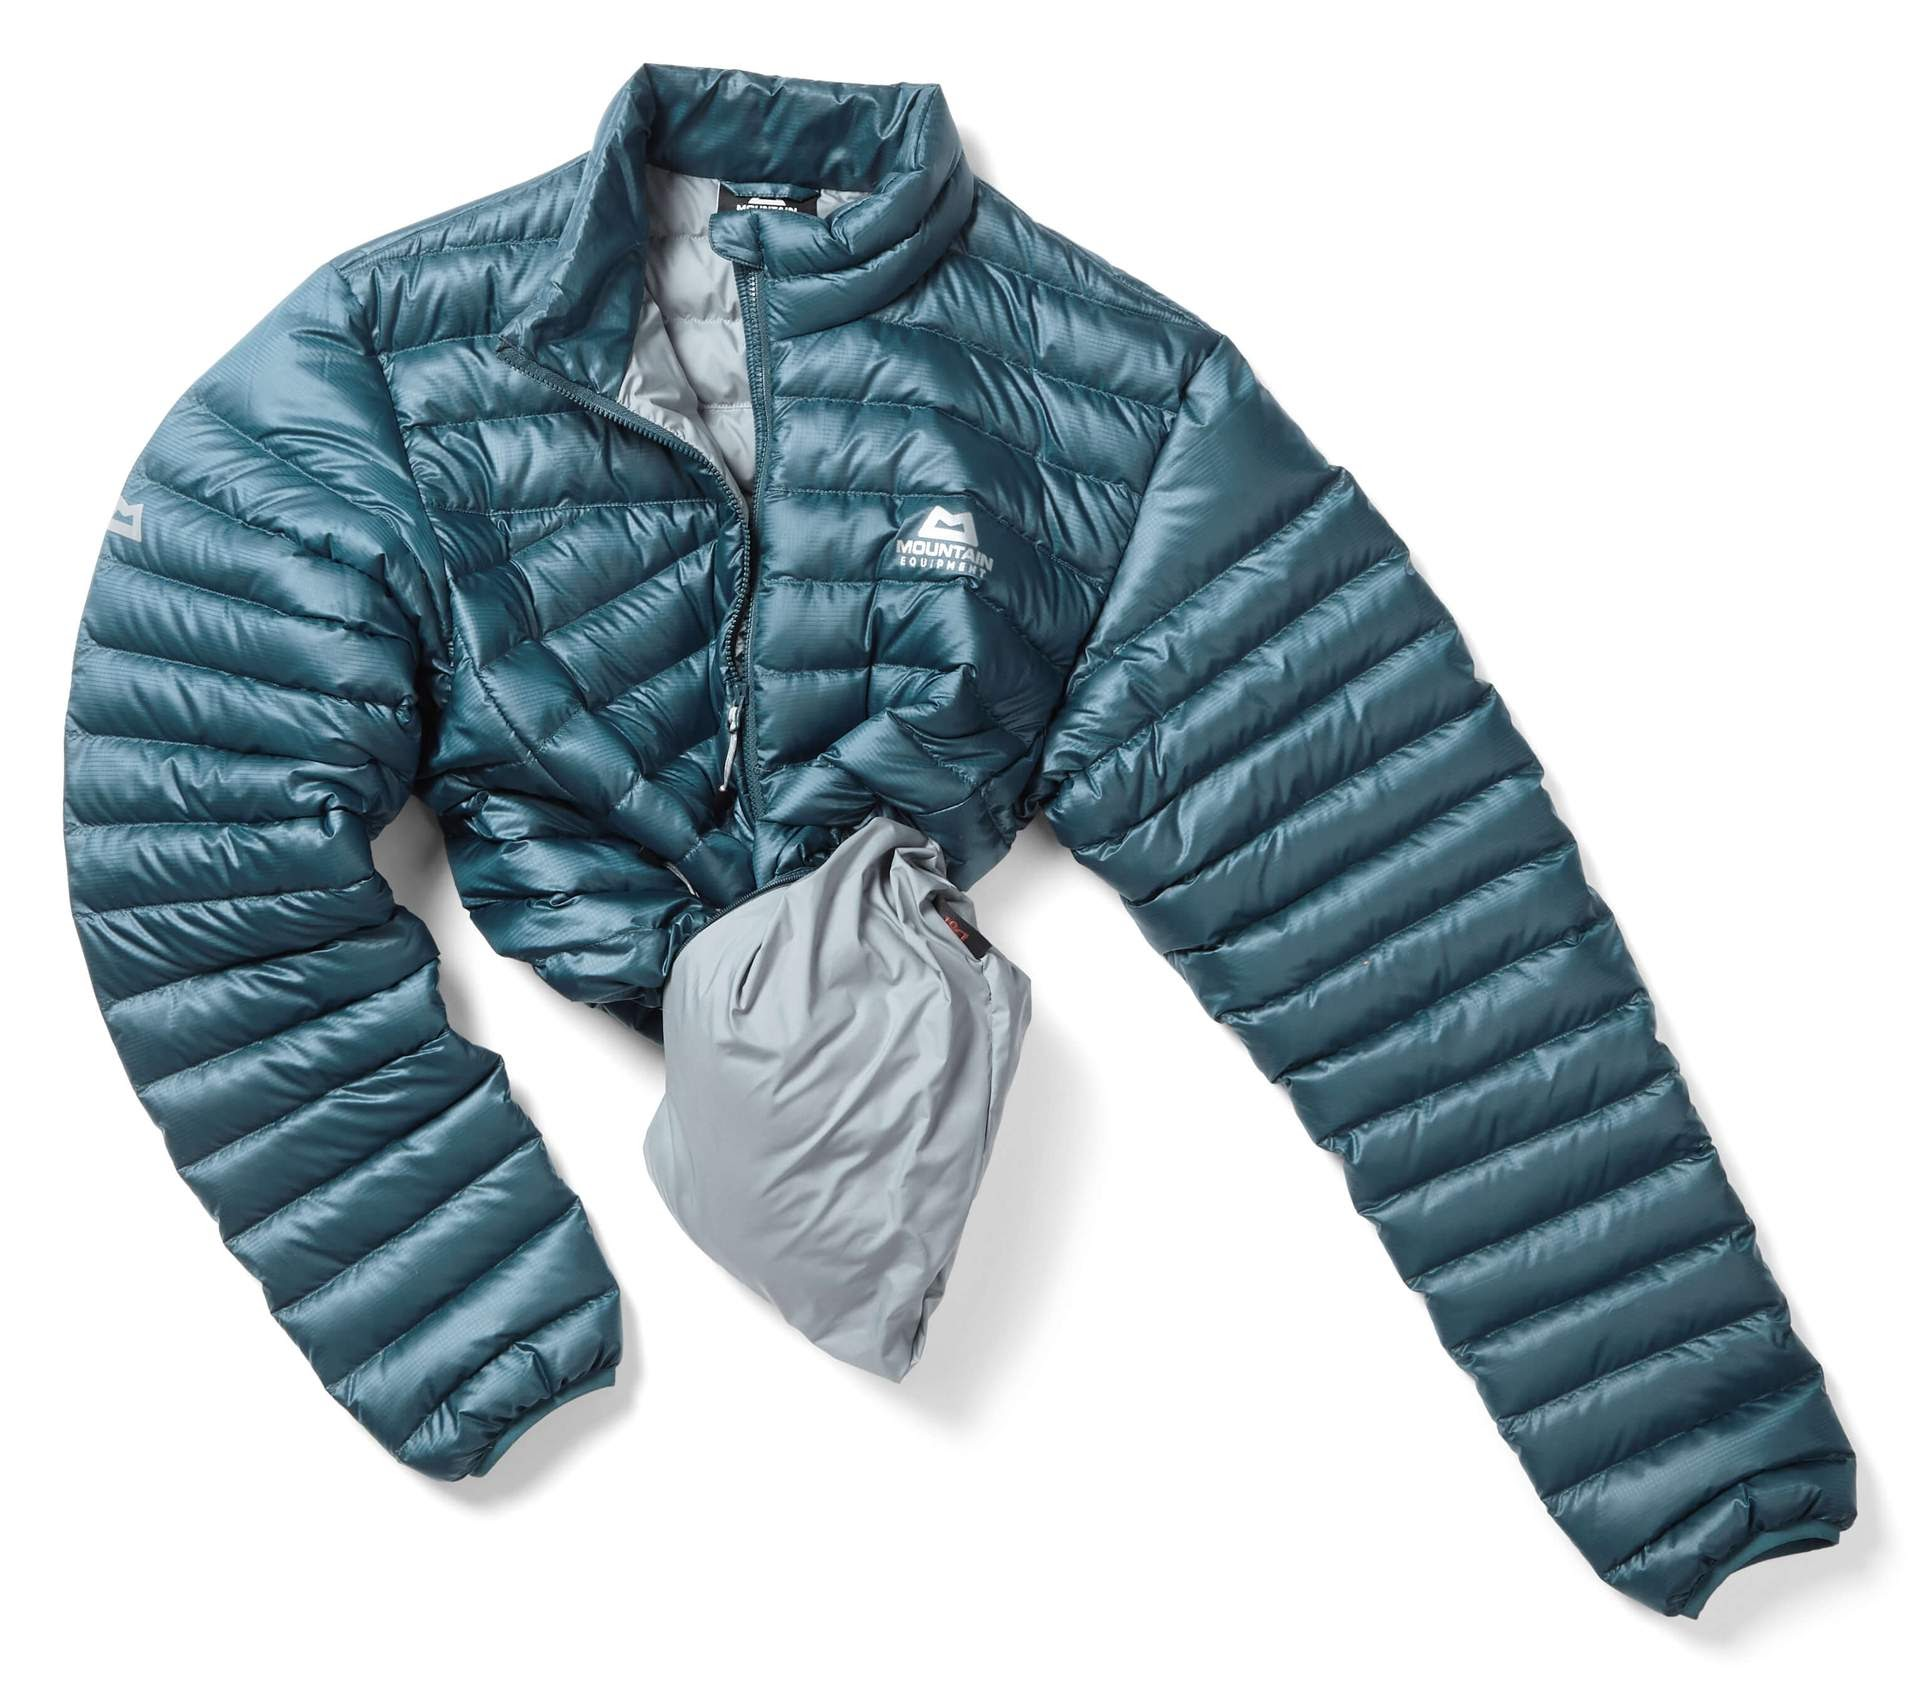 Down Jacket that's good for the environment